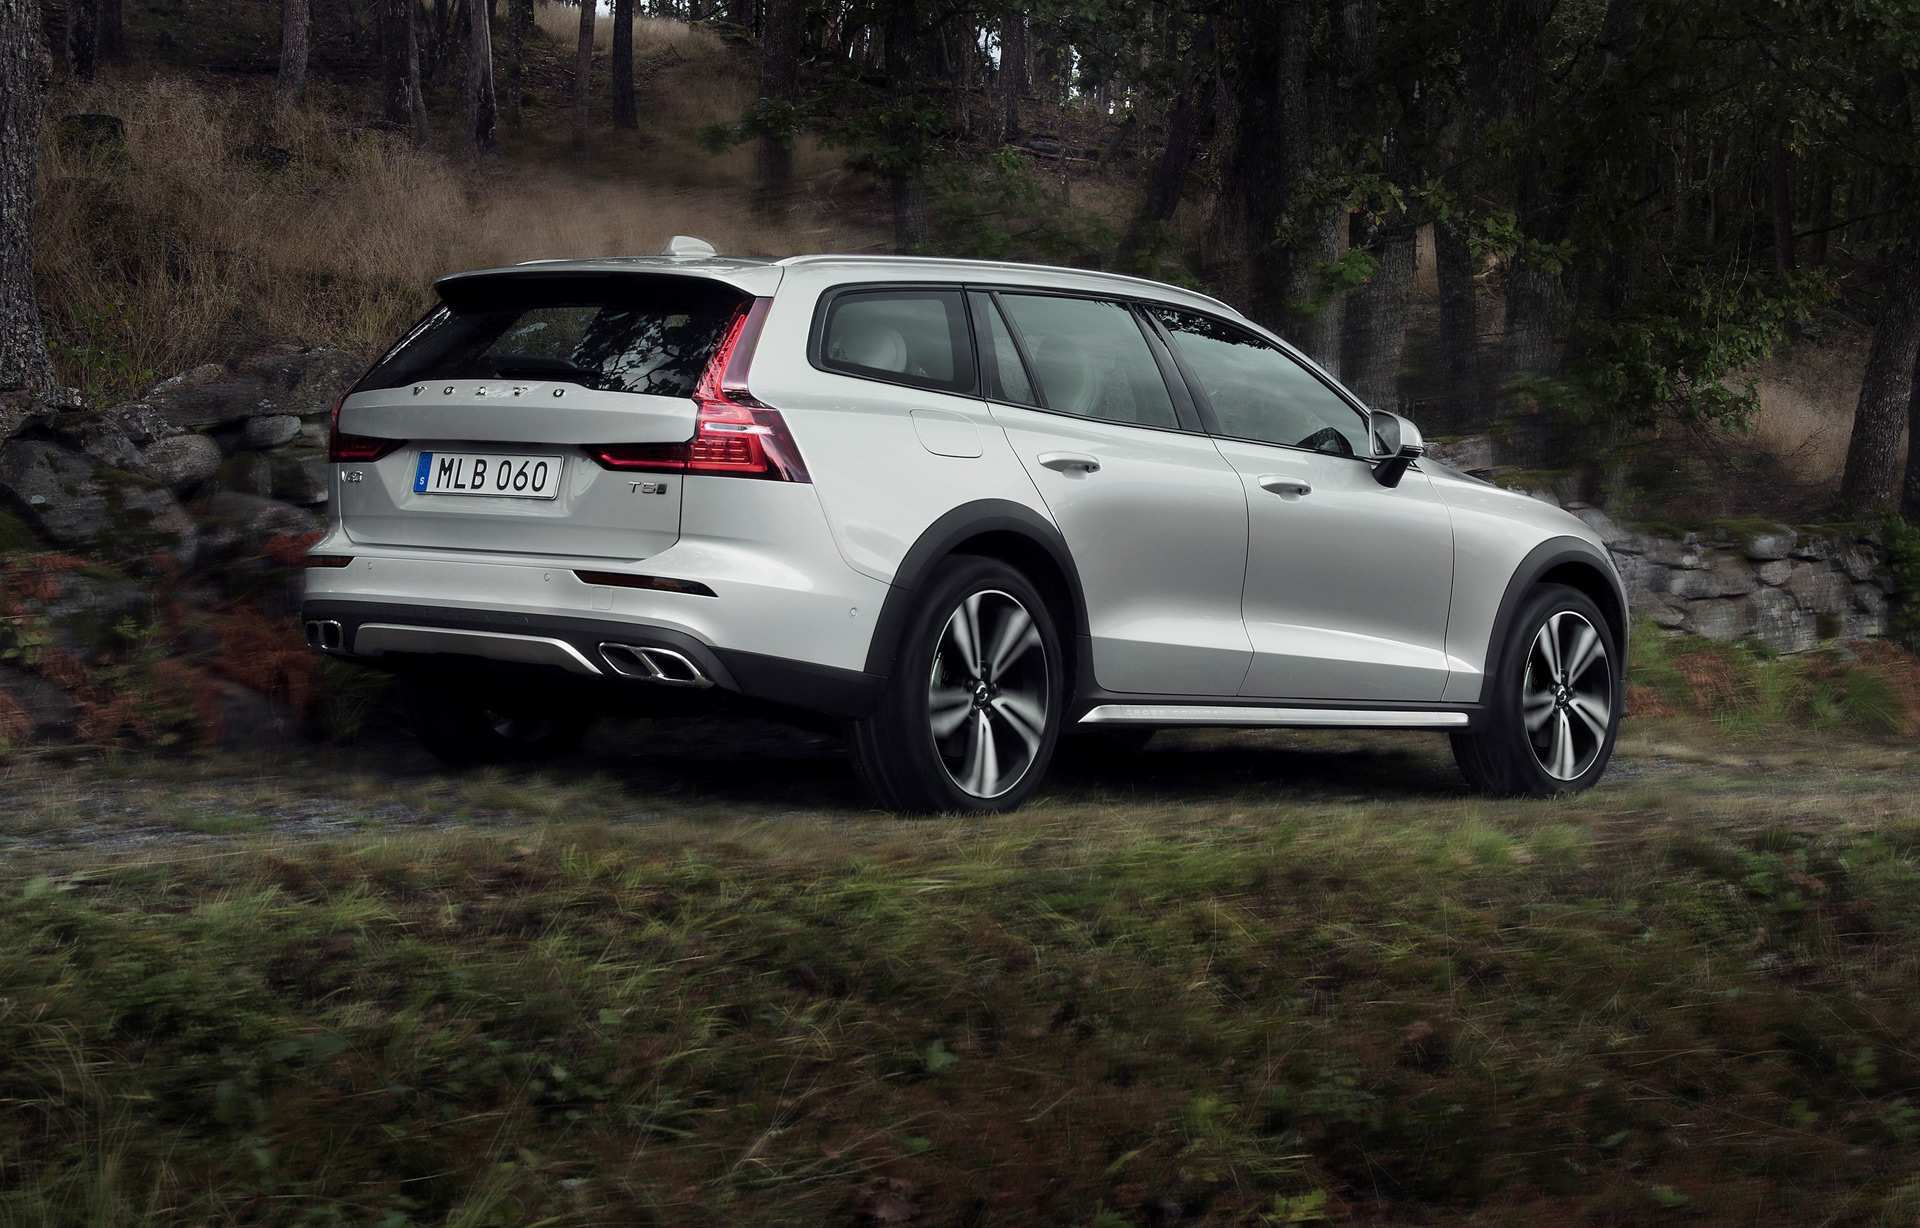 92 All New Volvo Cross Country 2020 New Review by Volvo Cross Country 2020